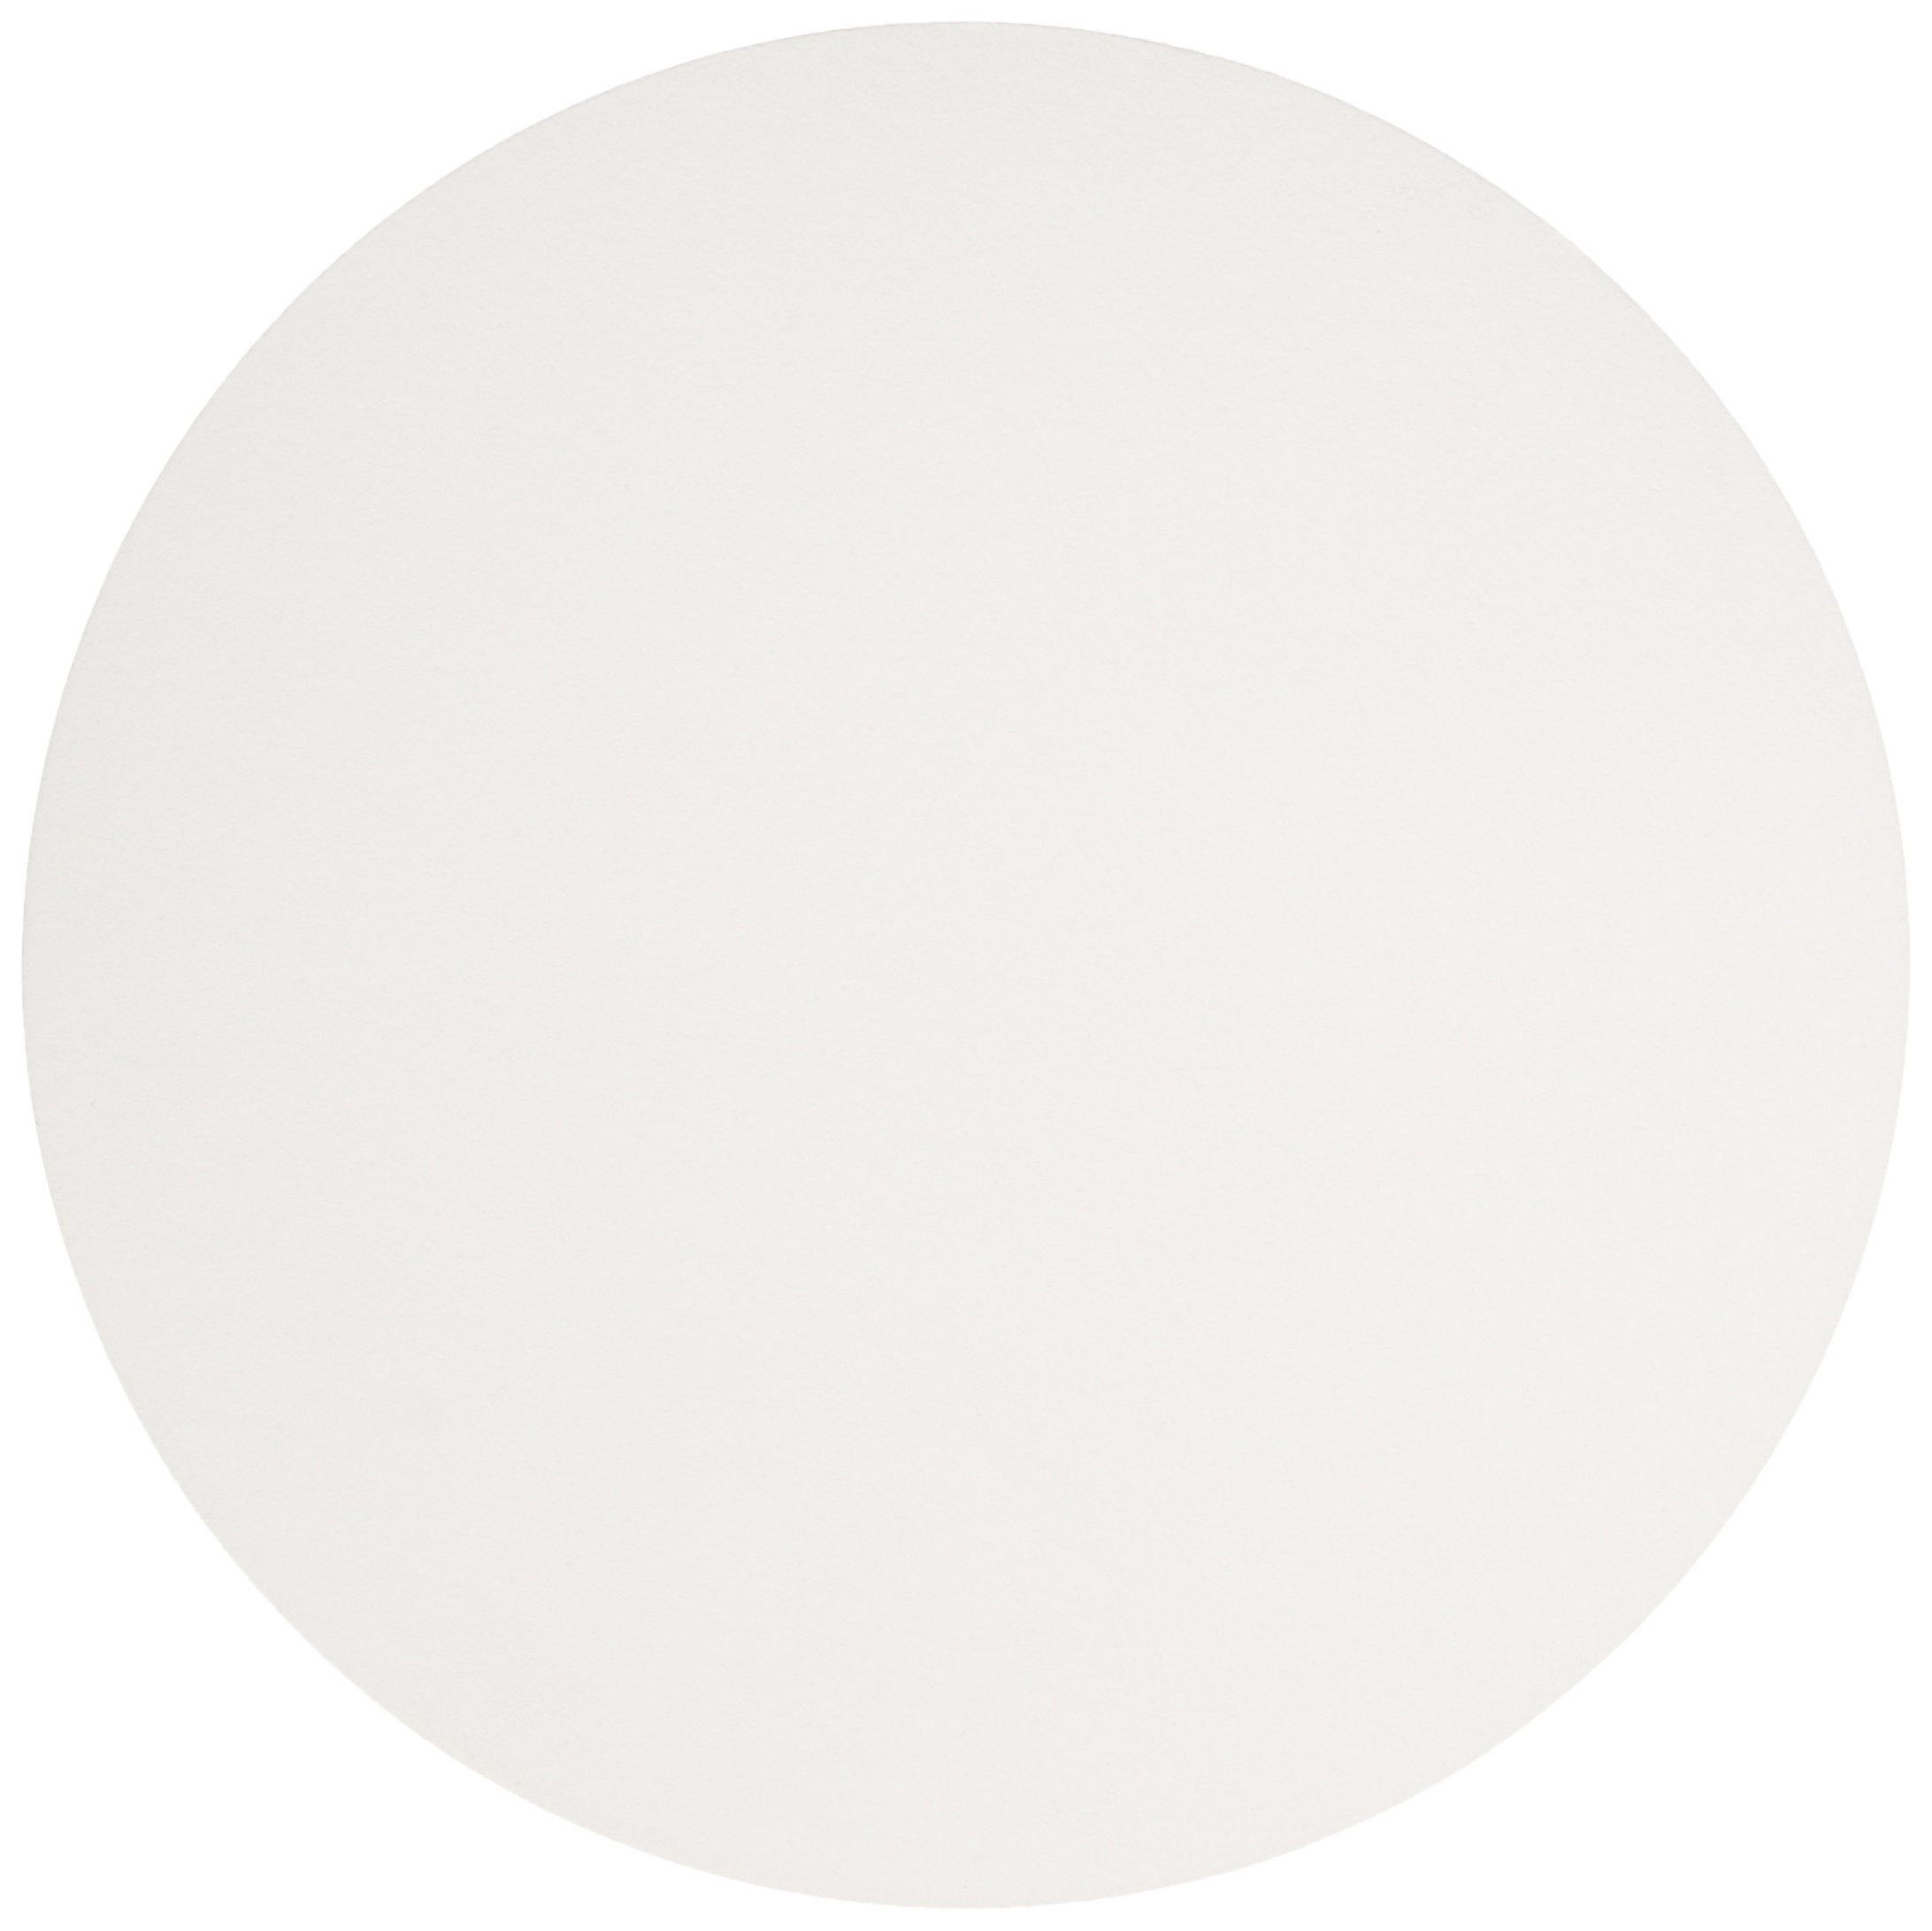 GE Whatman 10300210 Cotton Linters Ashless Qualitative Filter Paper, Grade 589/3, Circle, 110mm Diameter (Pack of 100) by Whatman